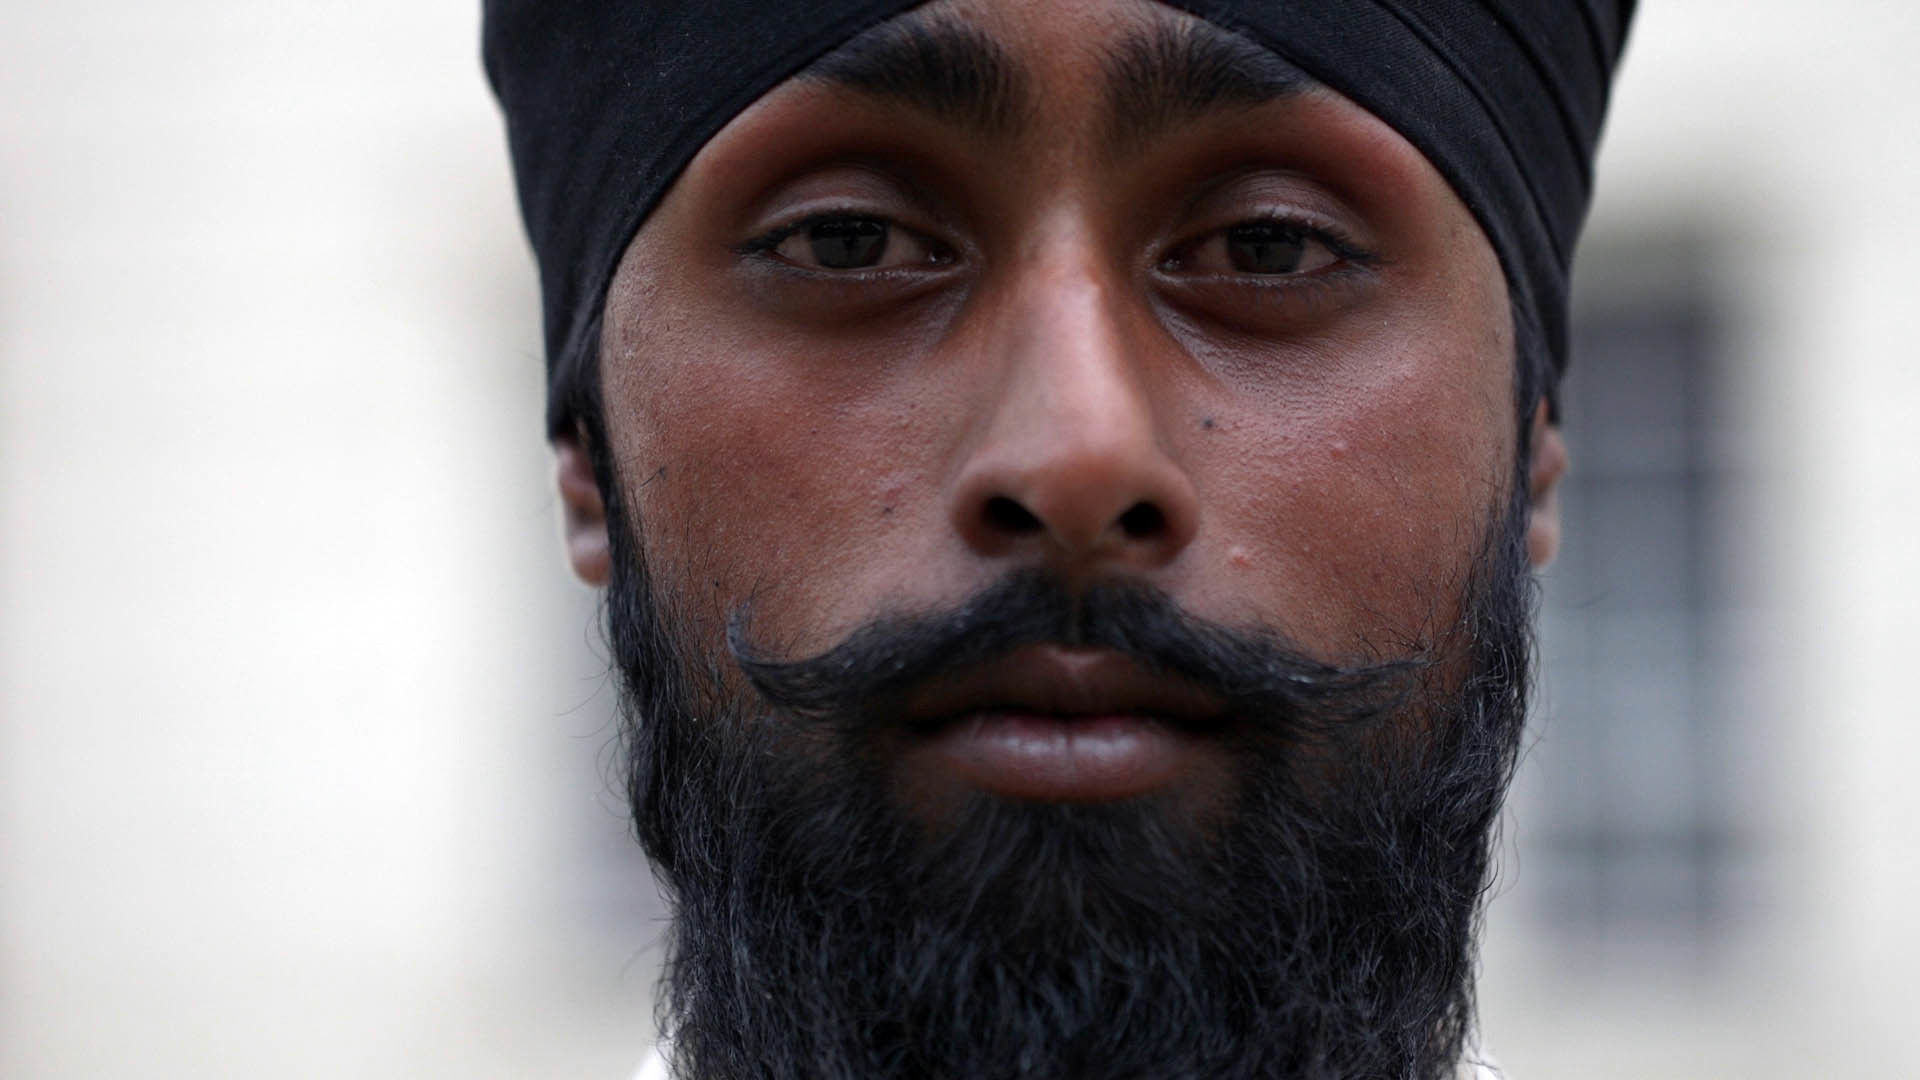 Coldstream Guards soldier Charanpreet Singh Lall who will wear a turban as he parades during Trooping the Colour has said he hopes it is looked upon as a